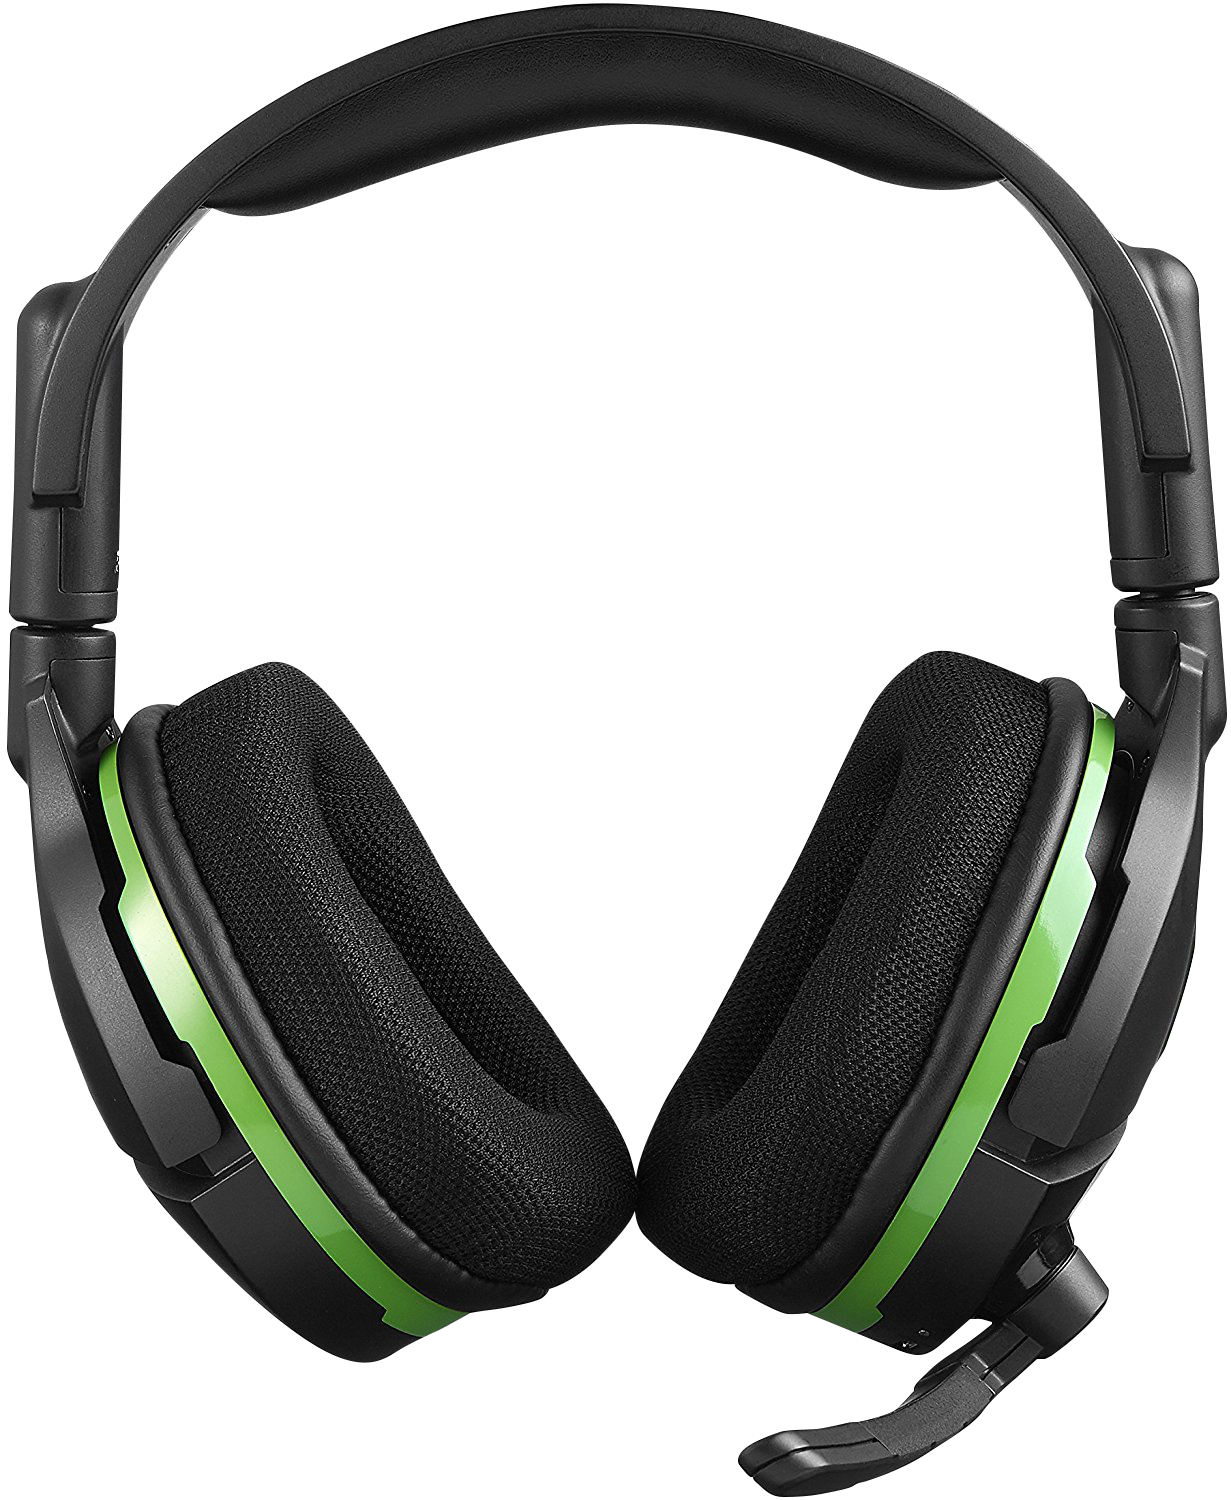 Turtle Beach Stealth 600 Gaming Headset for Xbox One